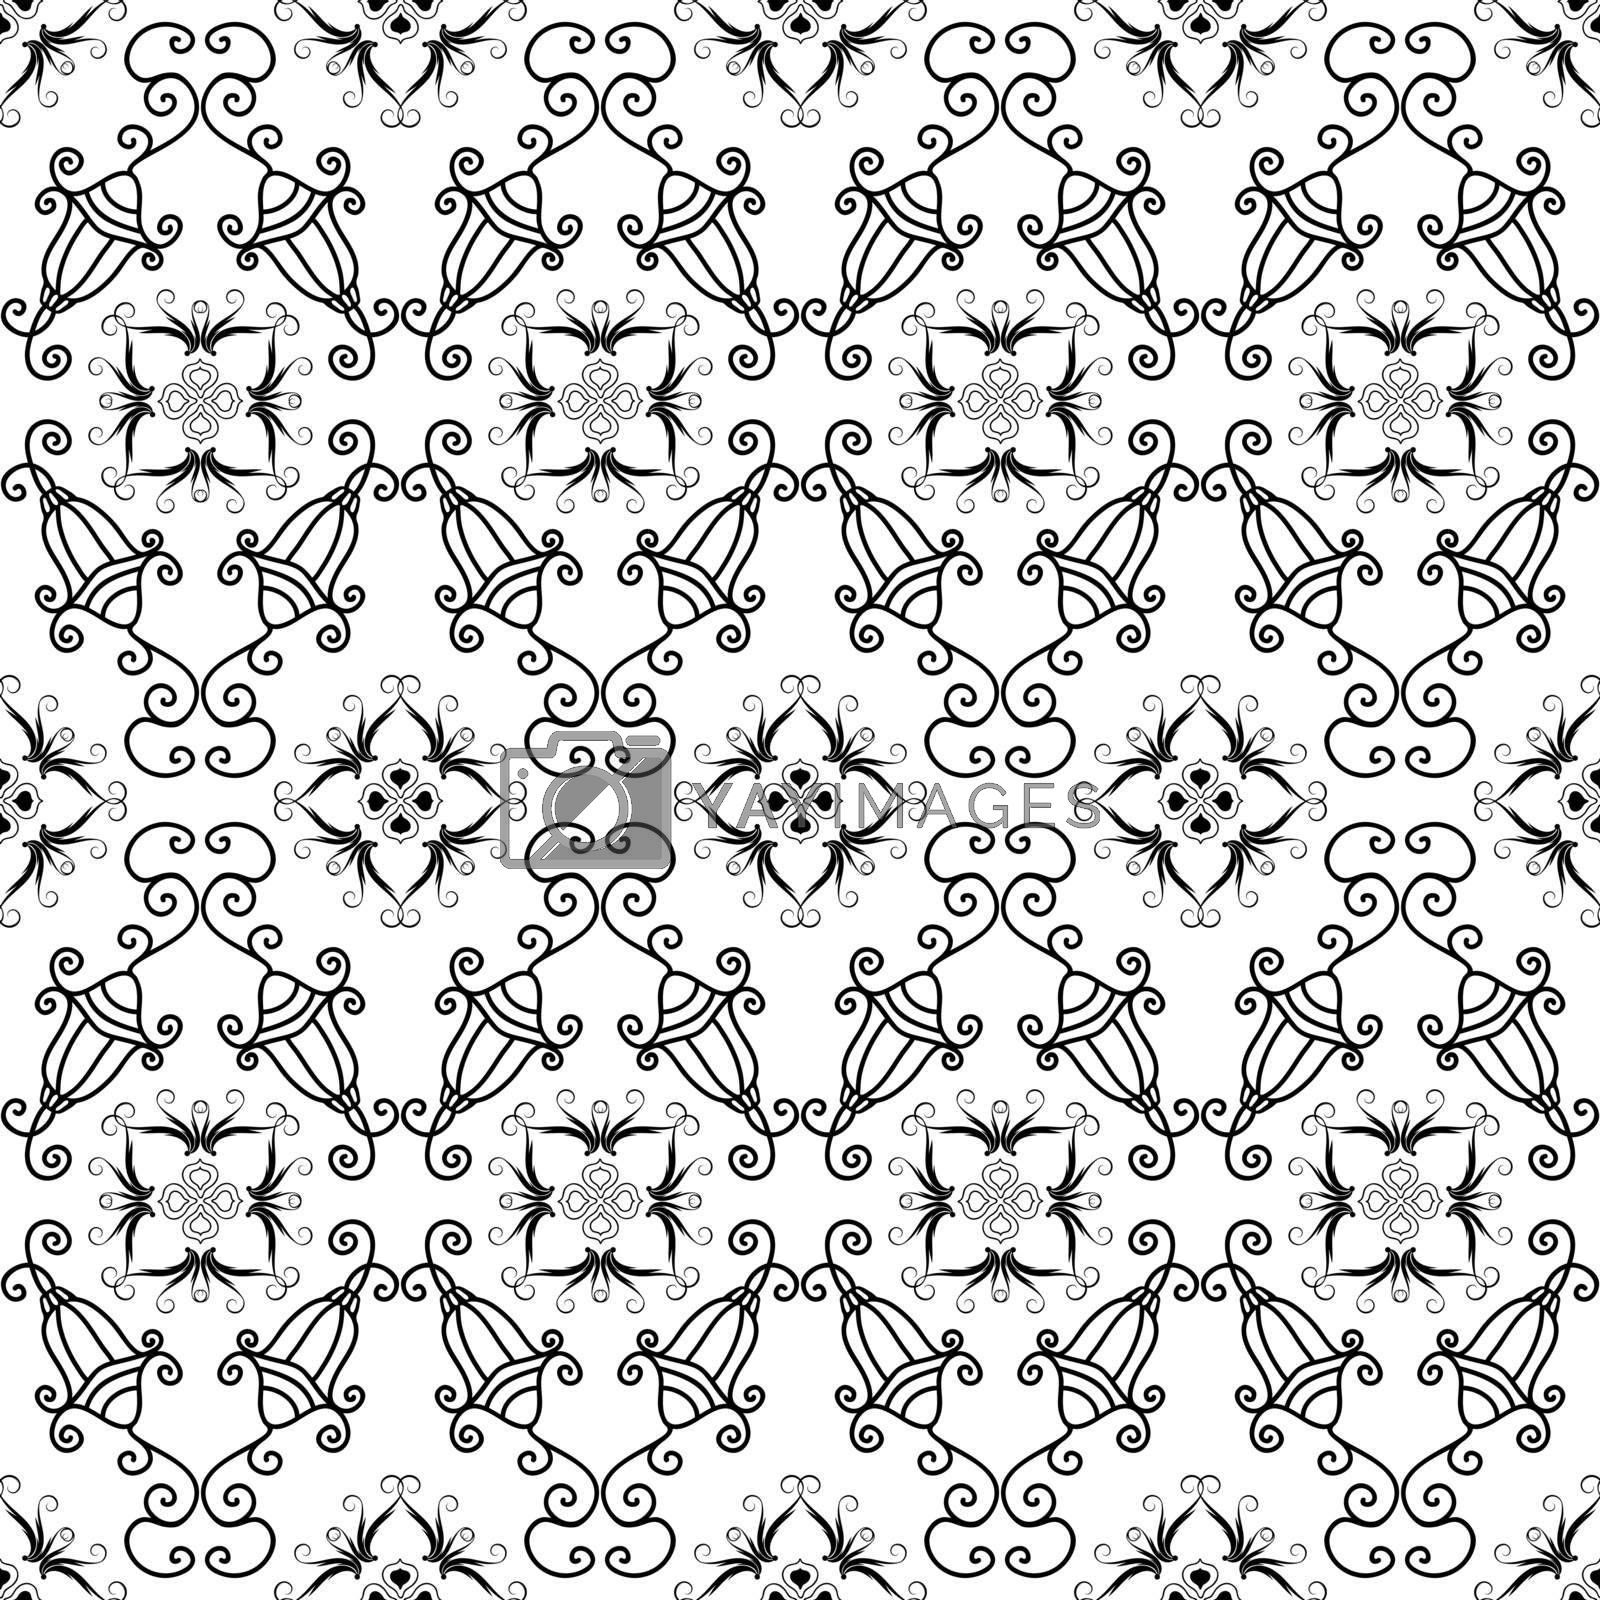 White and black christmas seamless pattern with small lamps and snowflakes (vector)